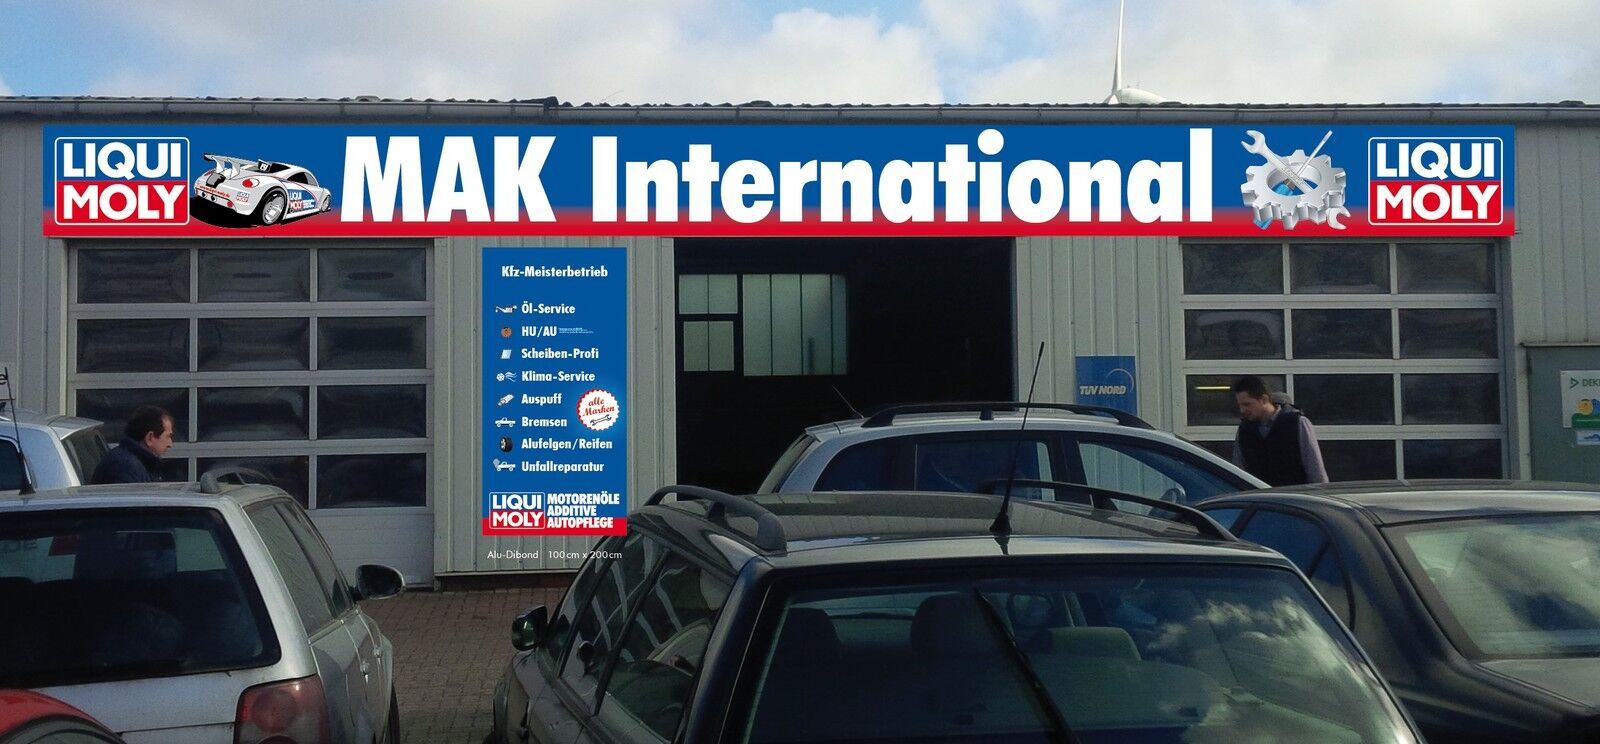 makinternational shop